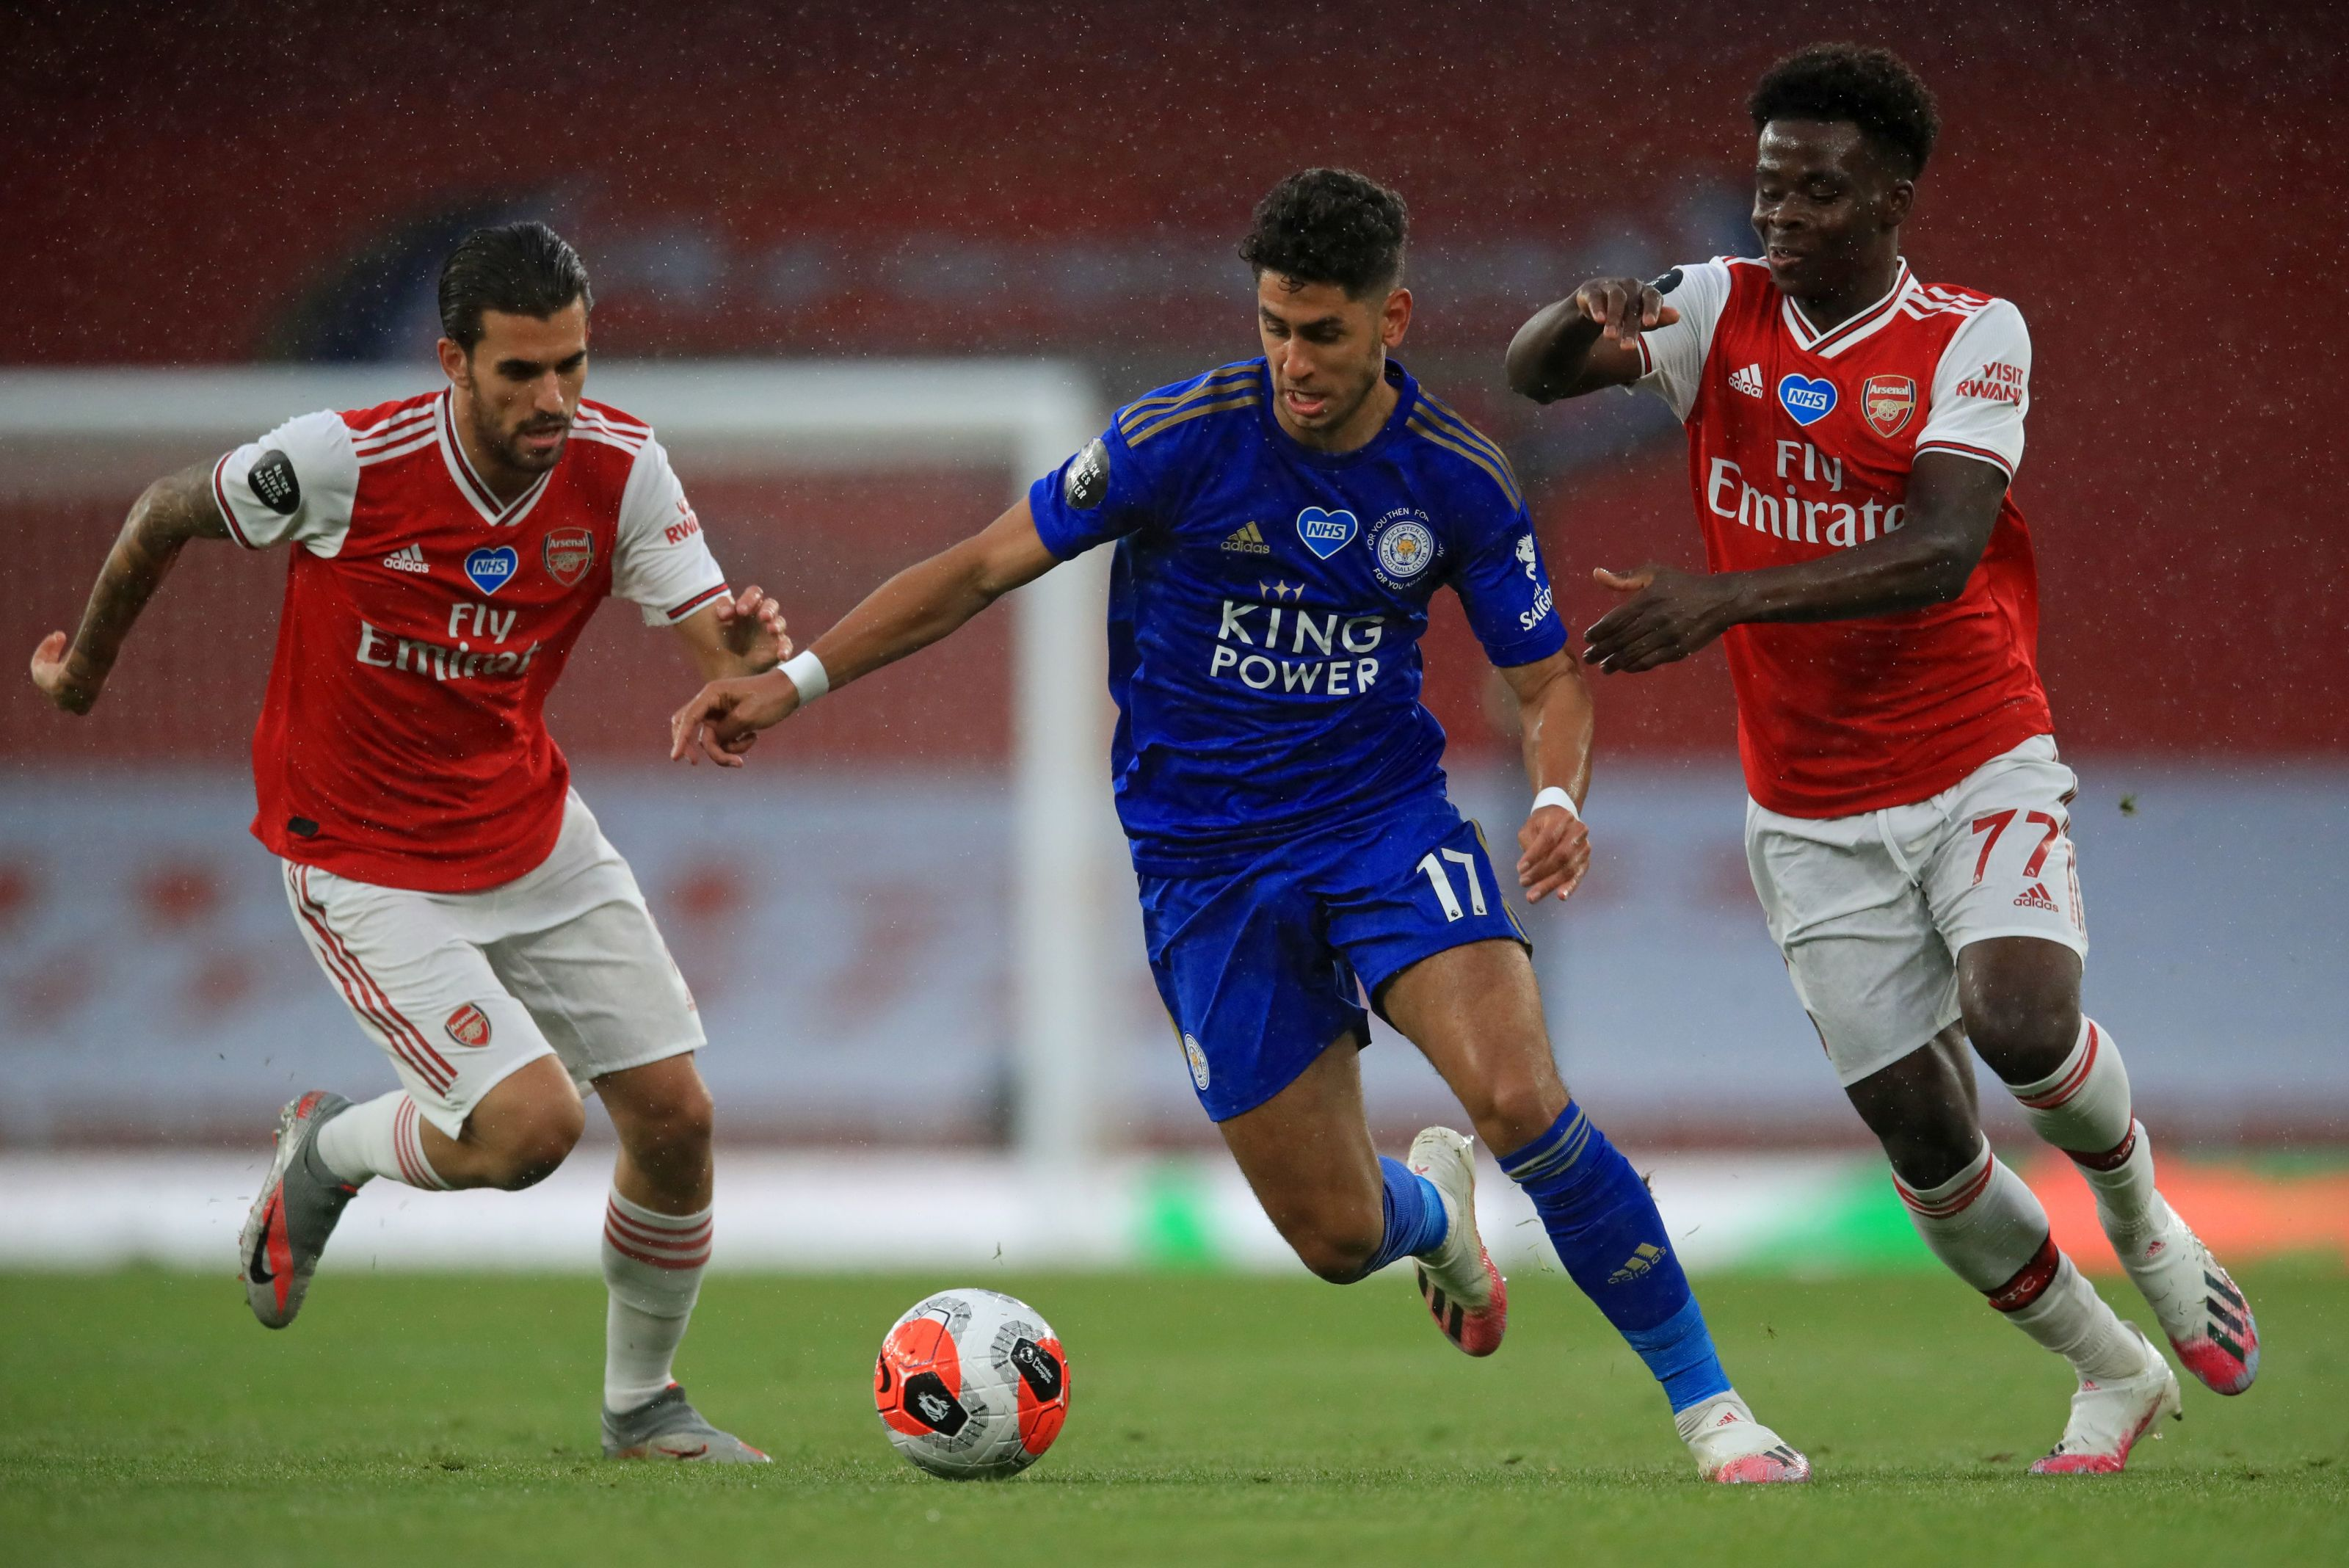 Arsenal vs Leicester: Premier League Preview for Sunday's Clash